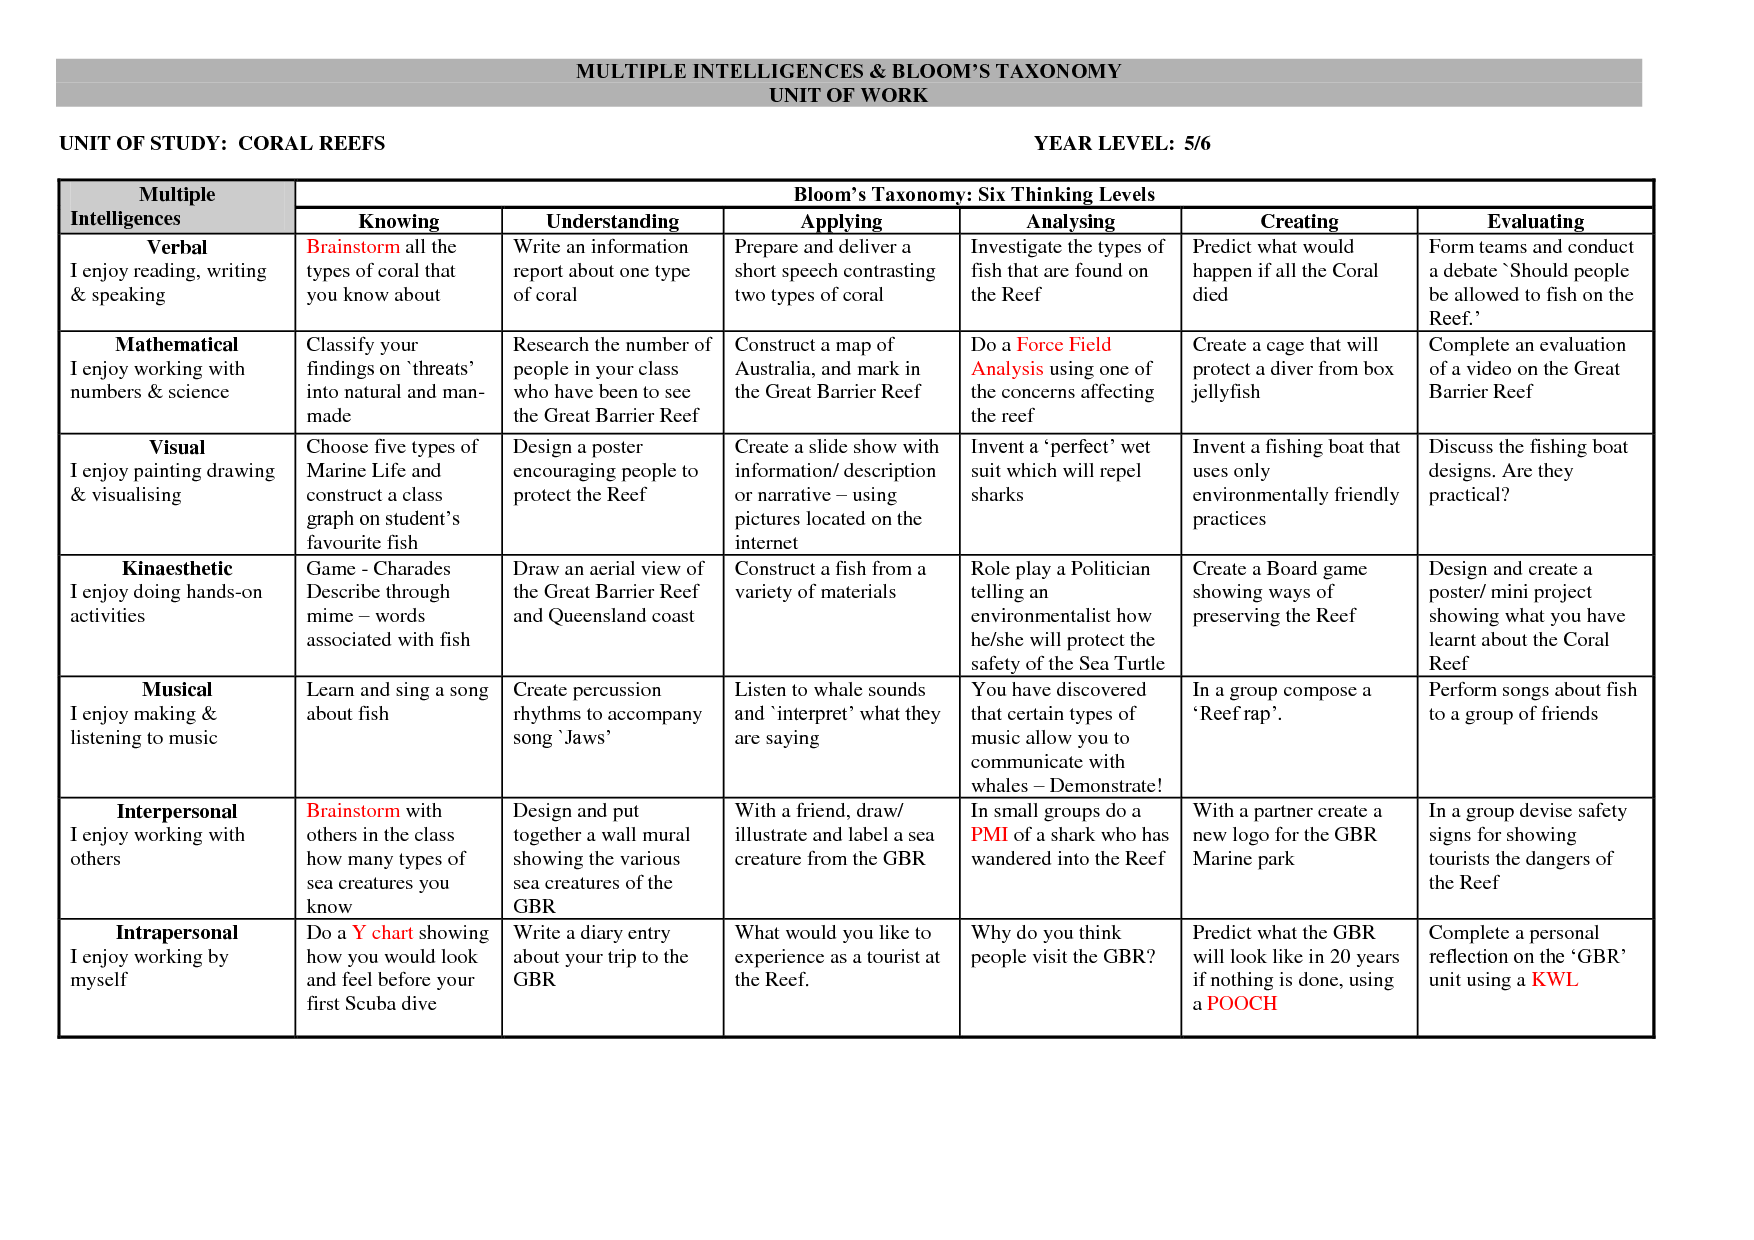 Assignment Grid For A Coral Reef Unit Grades 5 Amp 6